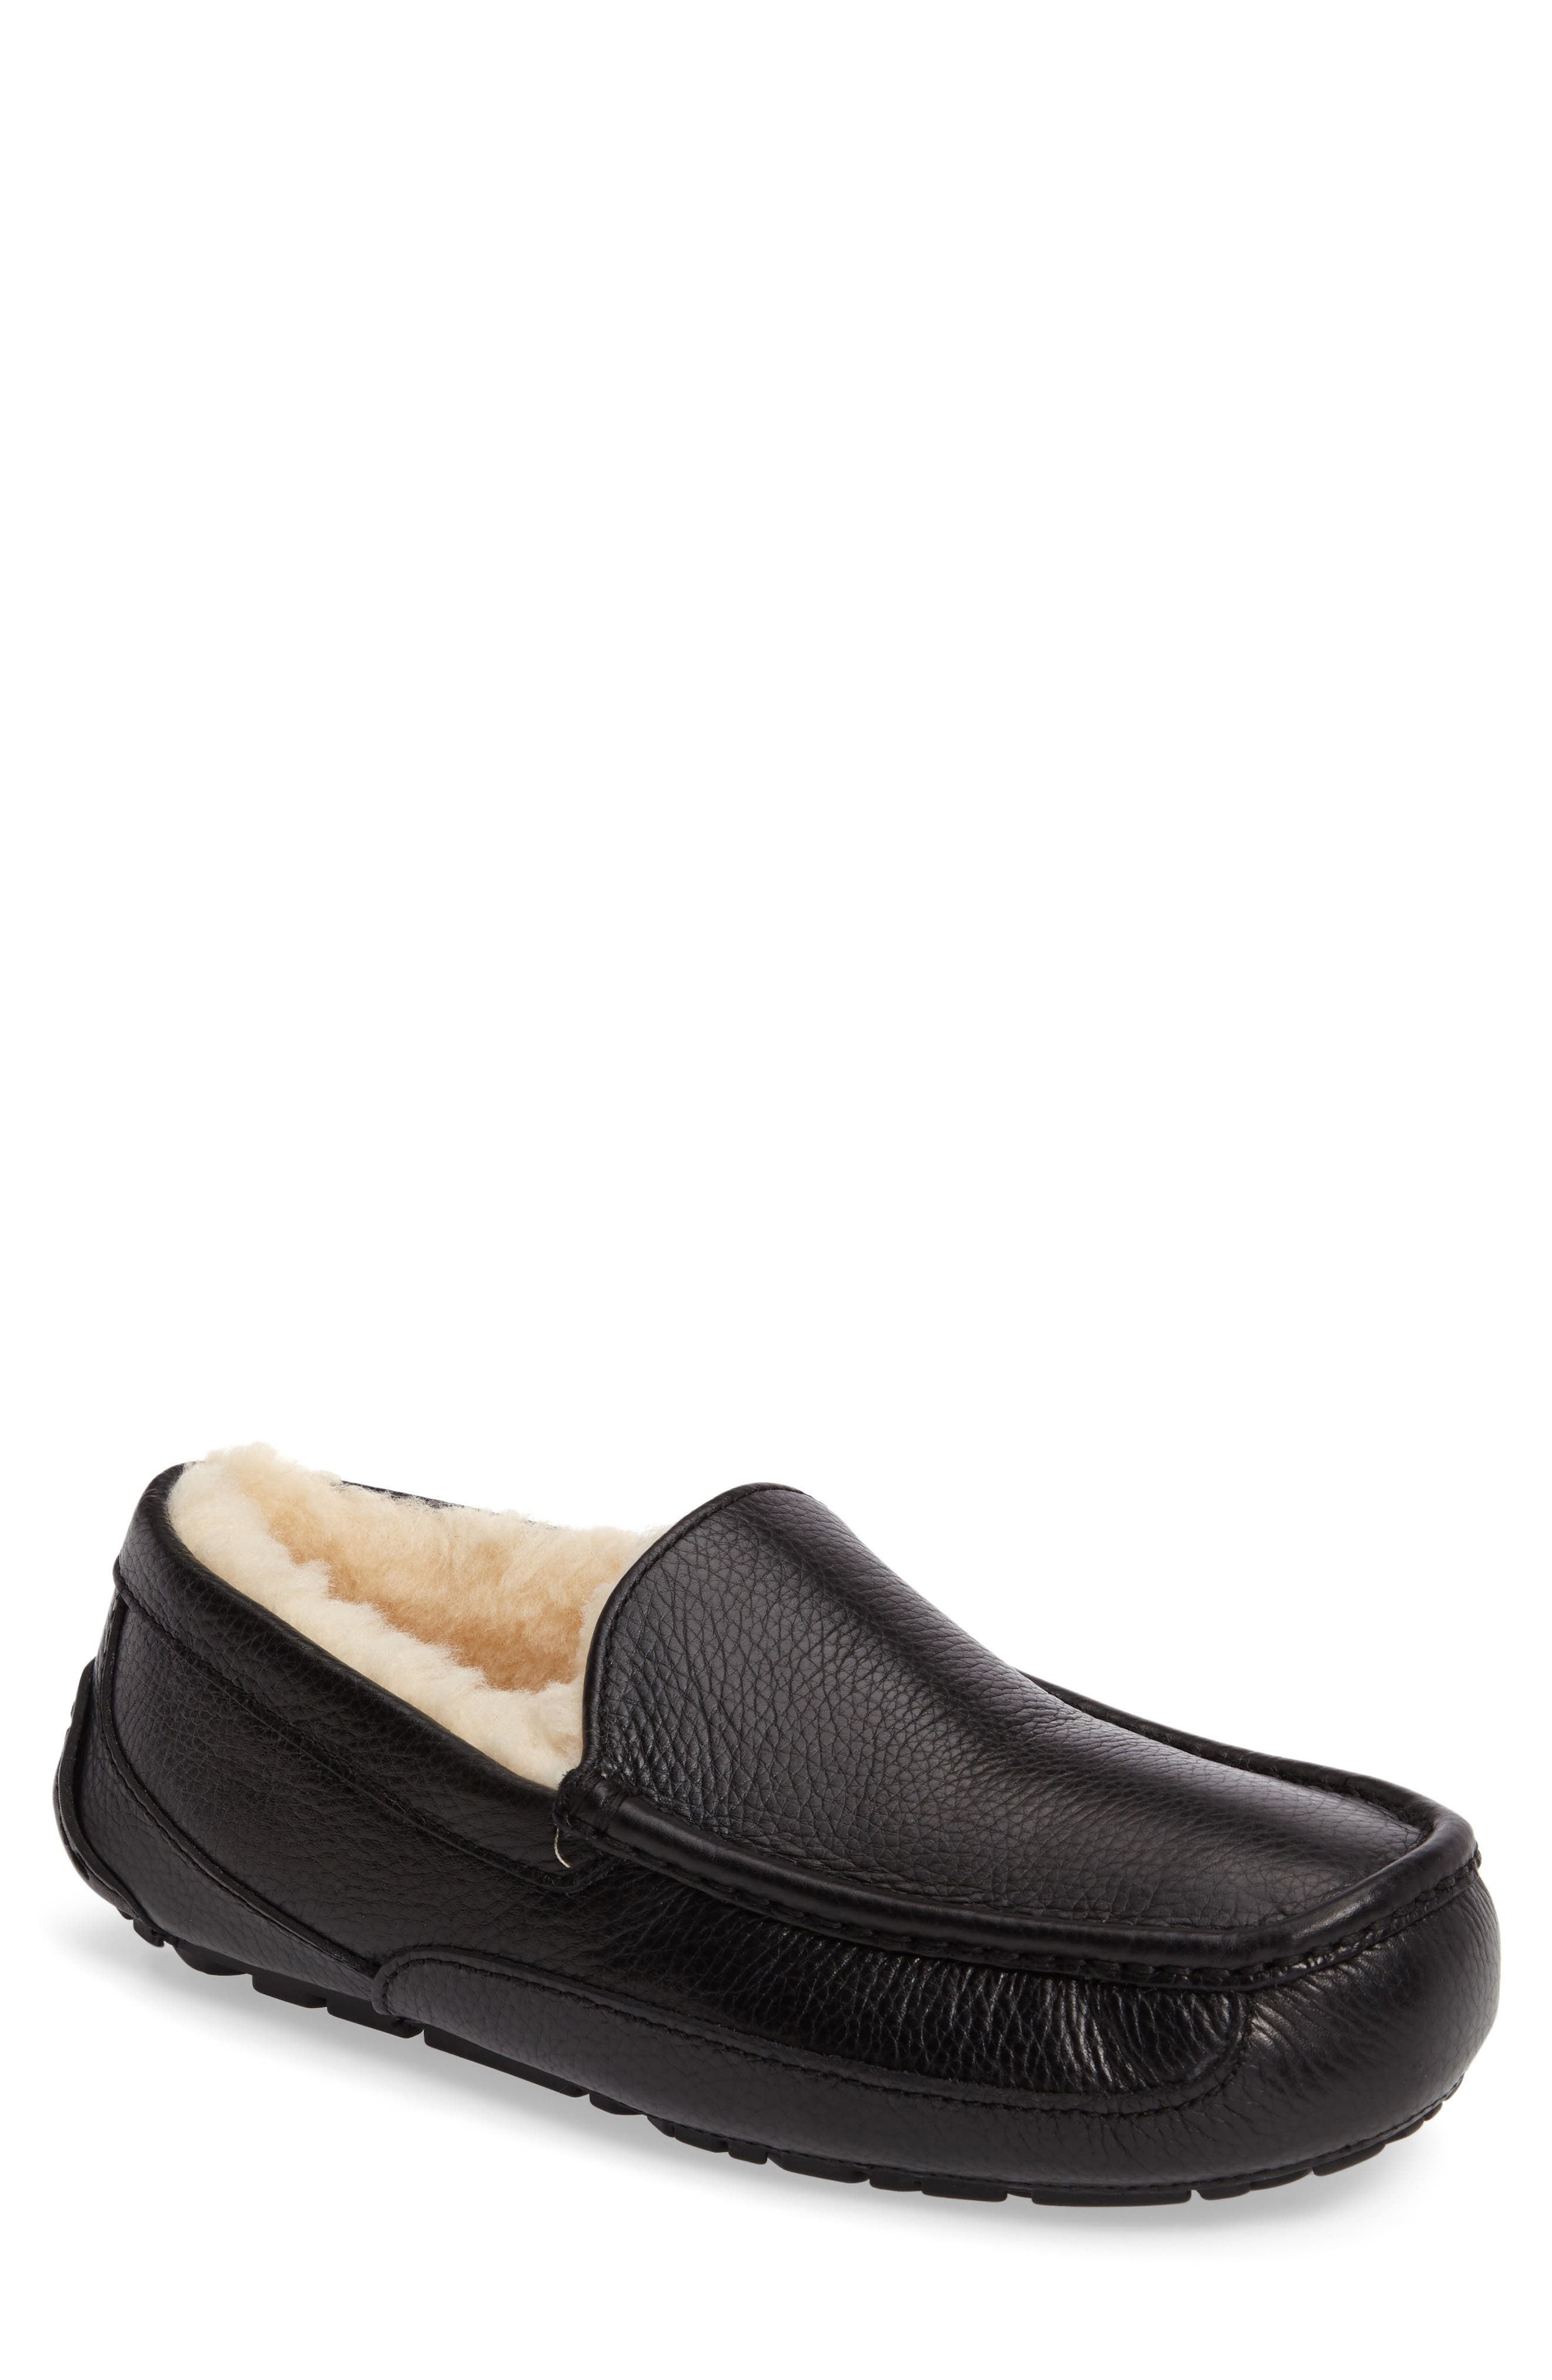 Ascot Leather Slipper,                         Main,                         color, BLACK